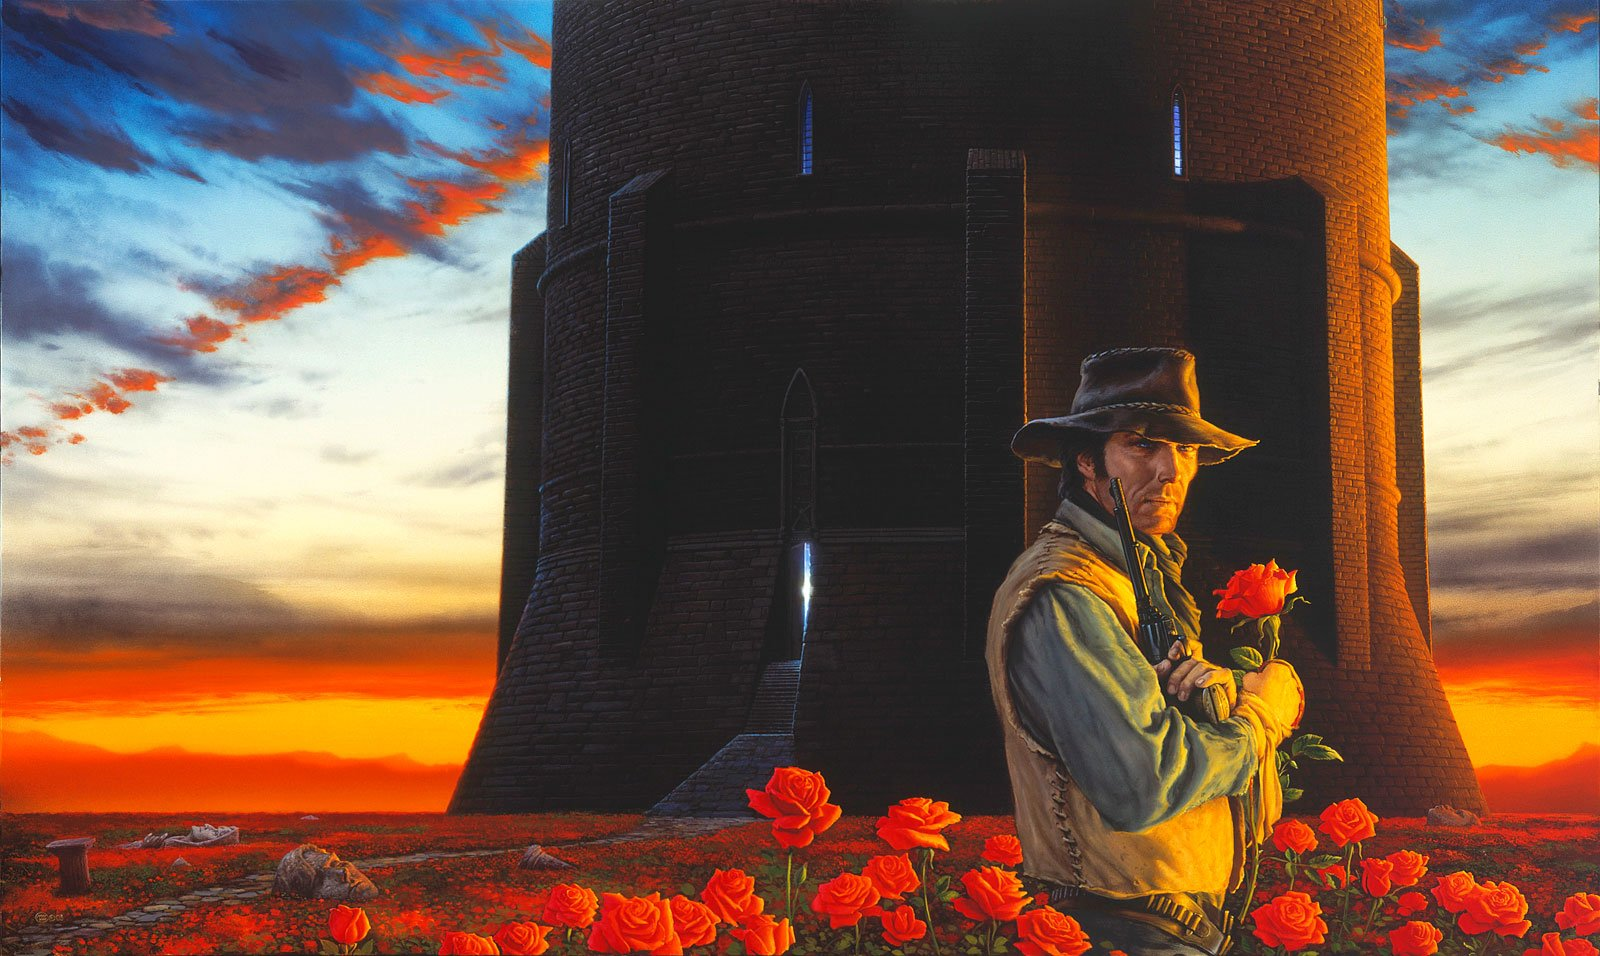 Cover art for the 7th book in The Dark Tower series from the incredibly talented Michael Whelan.